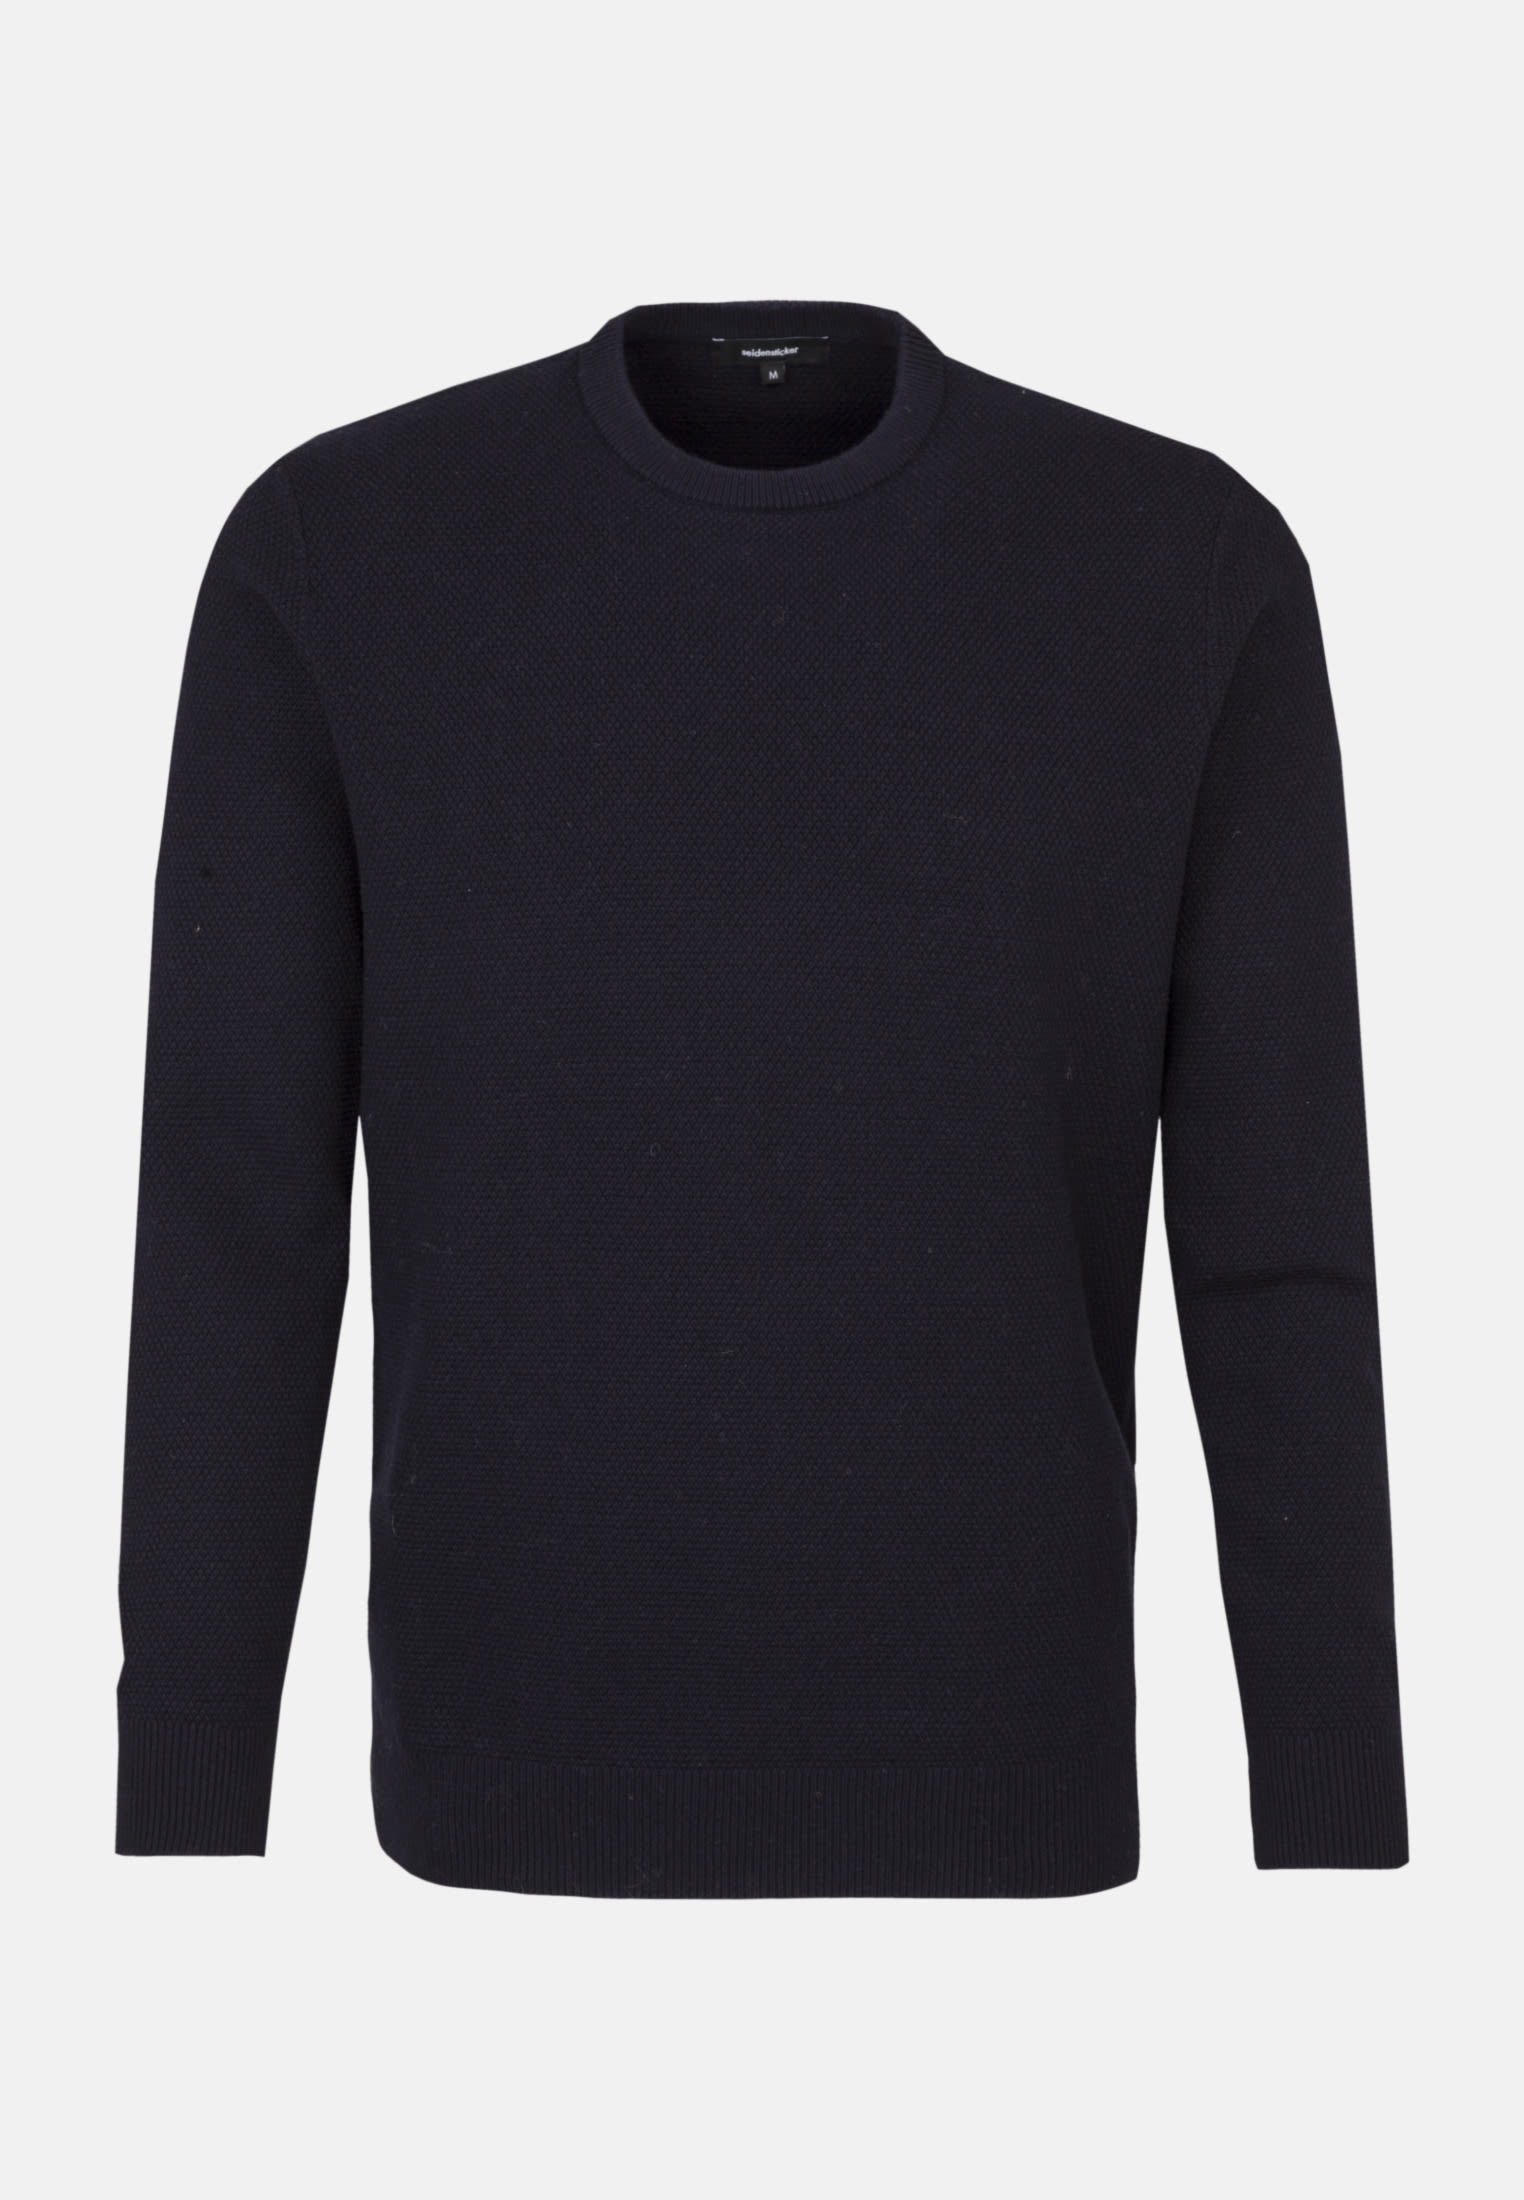 Crew Neck Pullover made of cotton blend in Dark blue |  Seidensticker Onlineshop